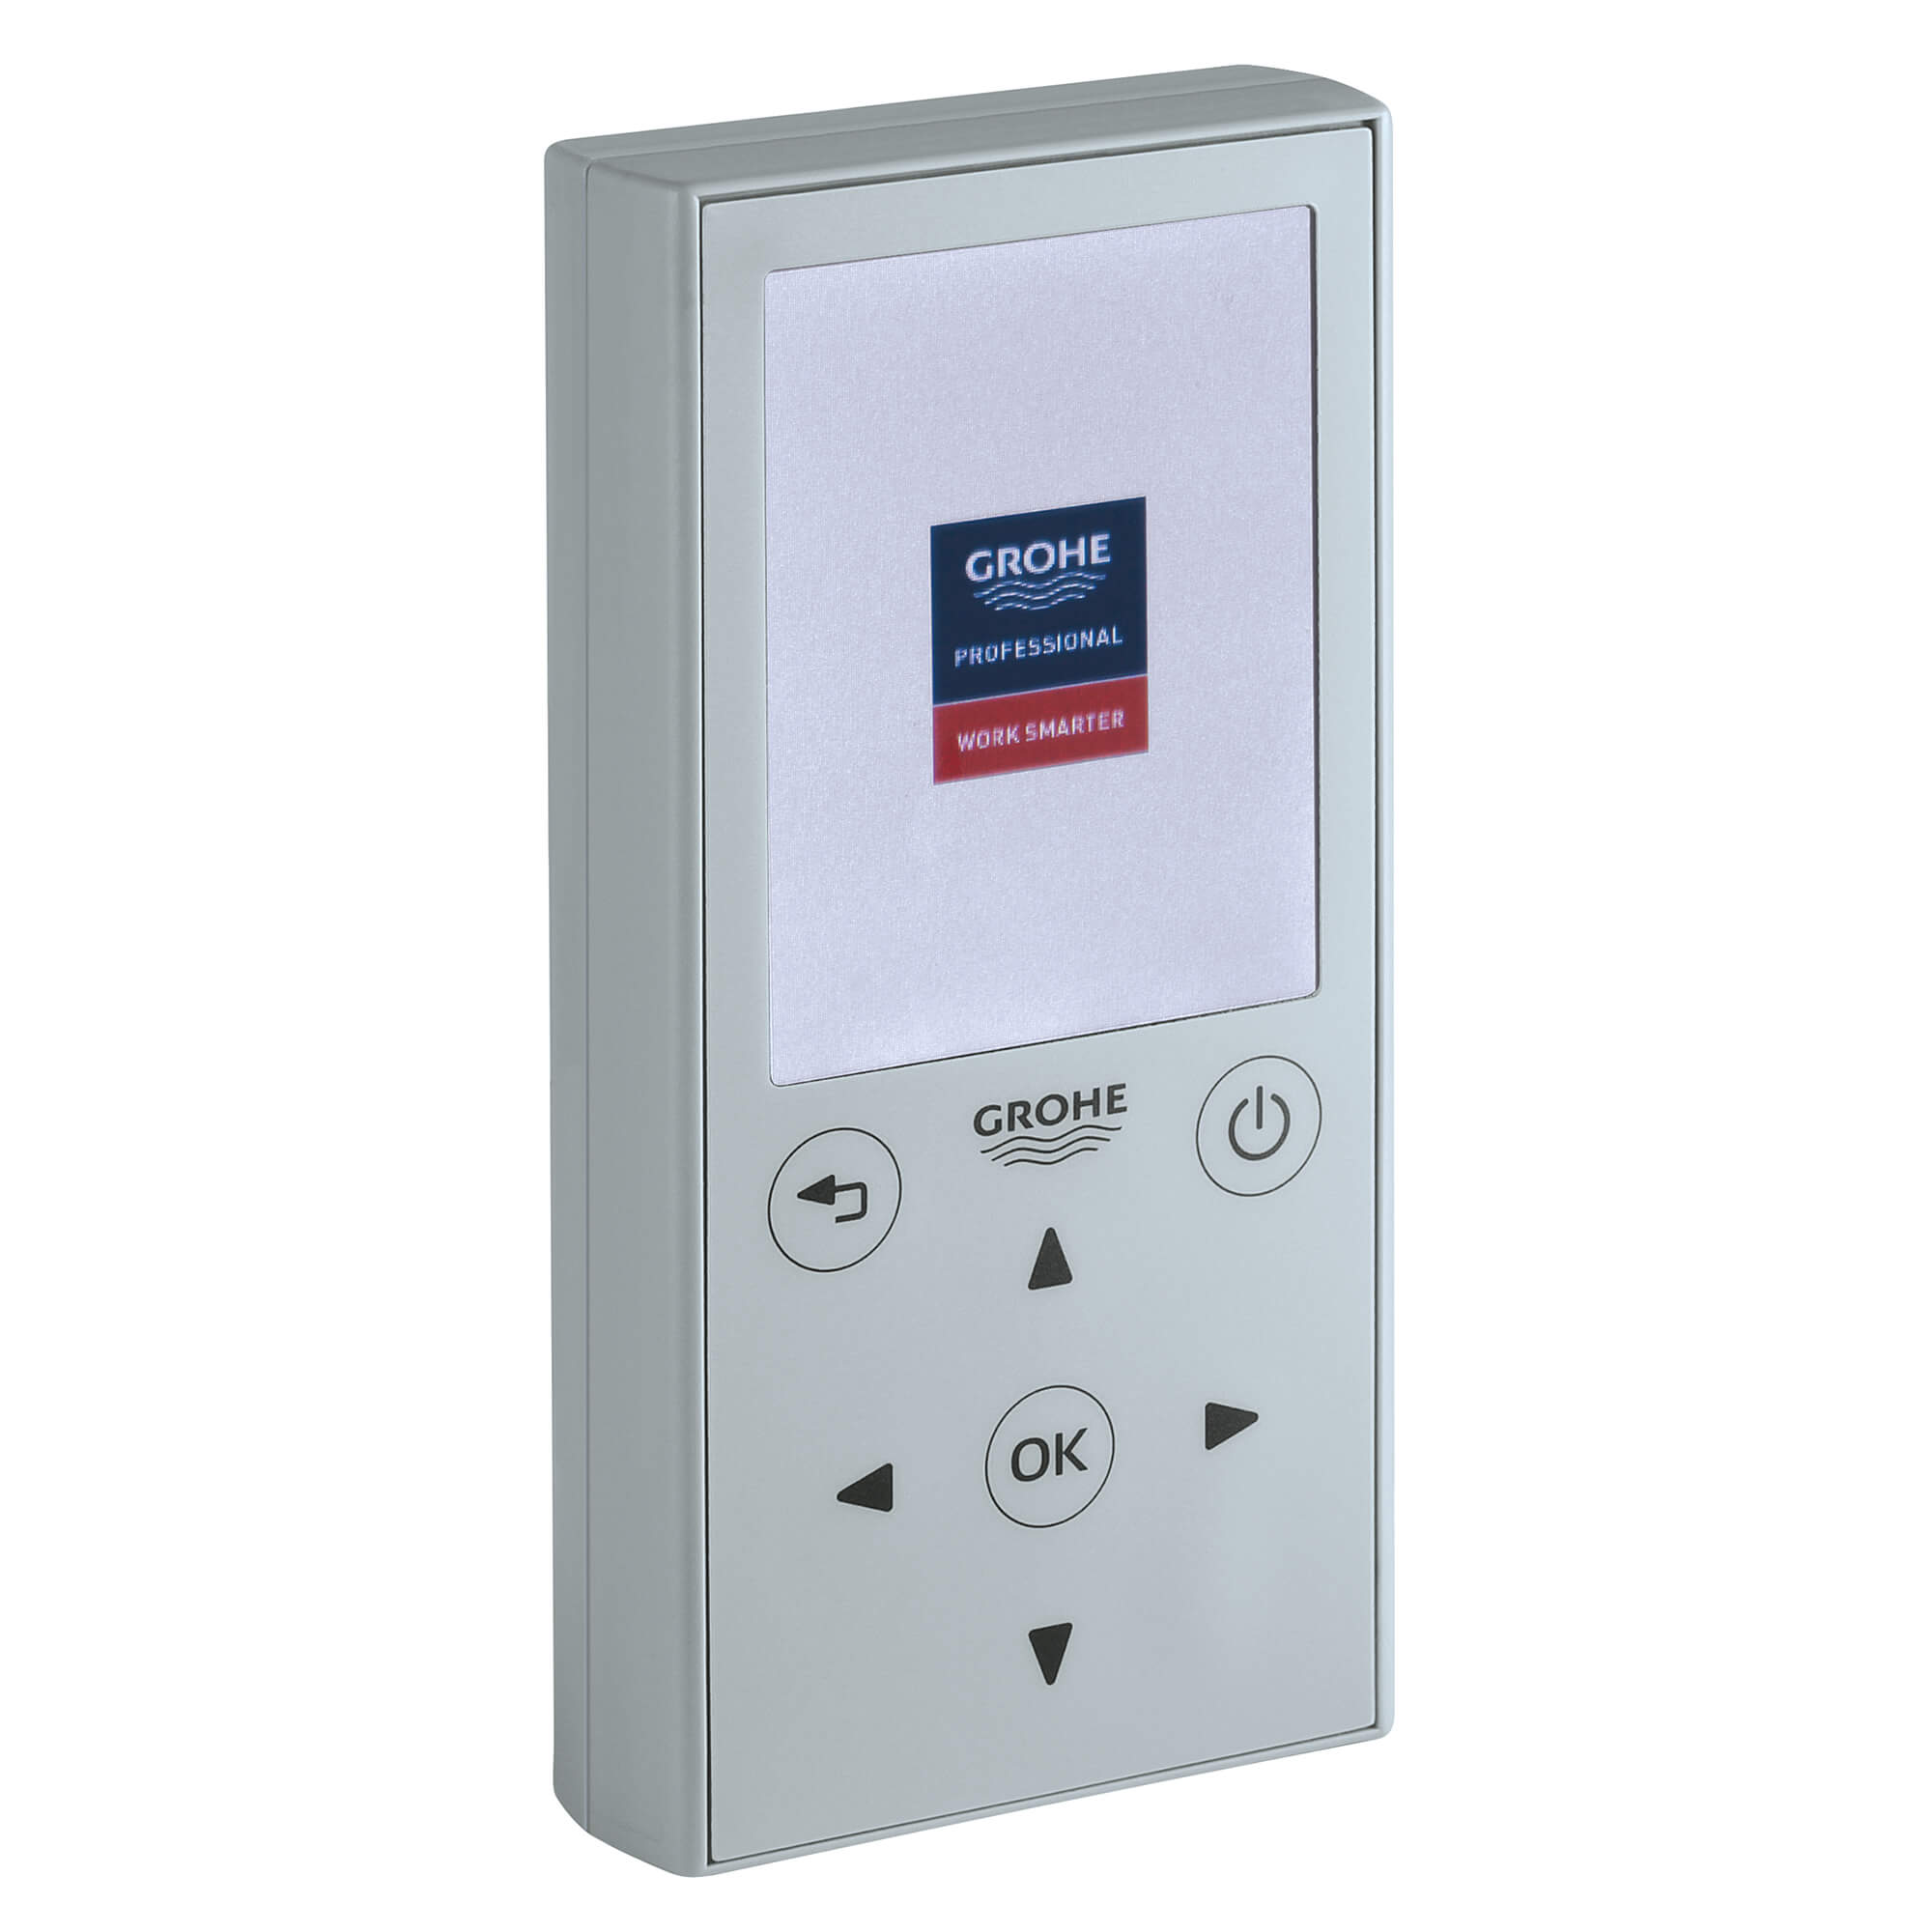 Remote control for all GROHE infra red products GROHE CHROME